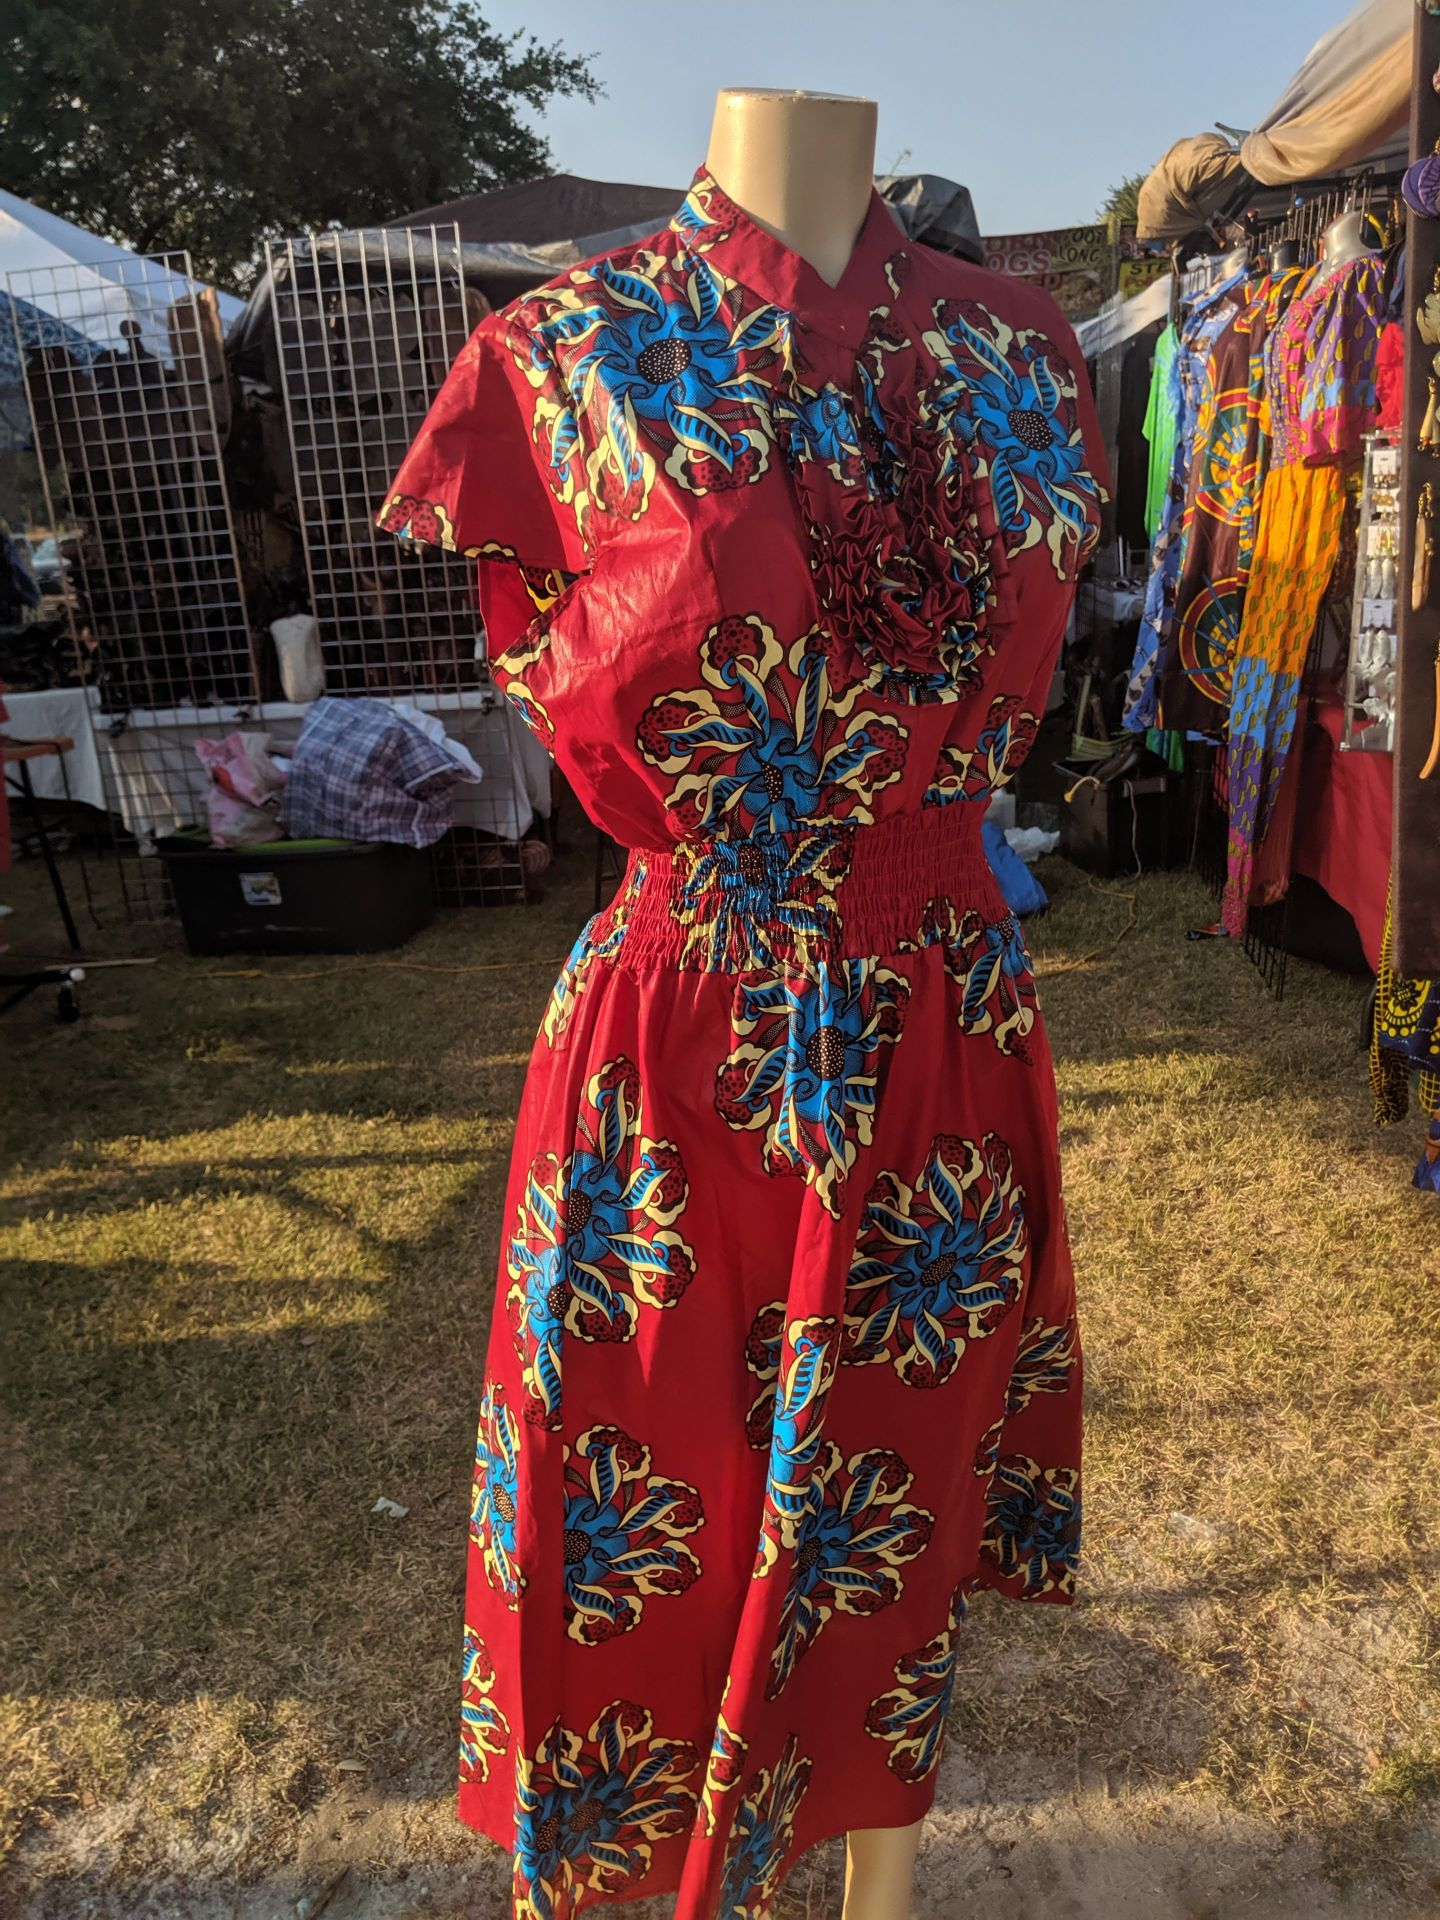 IMG_20190524_185607 Black Southern Belle Travels: Images of Gullah Festival 2019 in Beaufort, SC